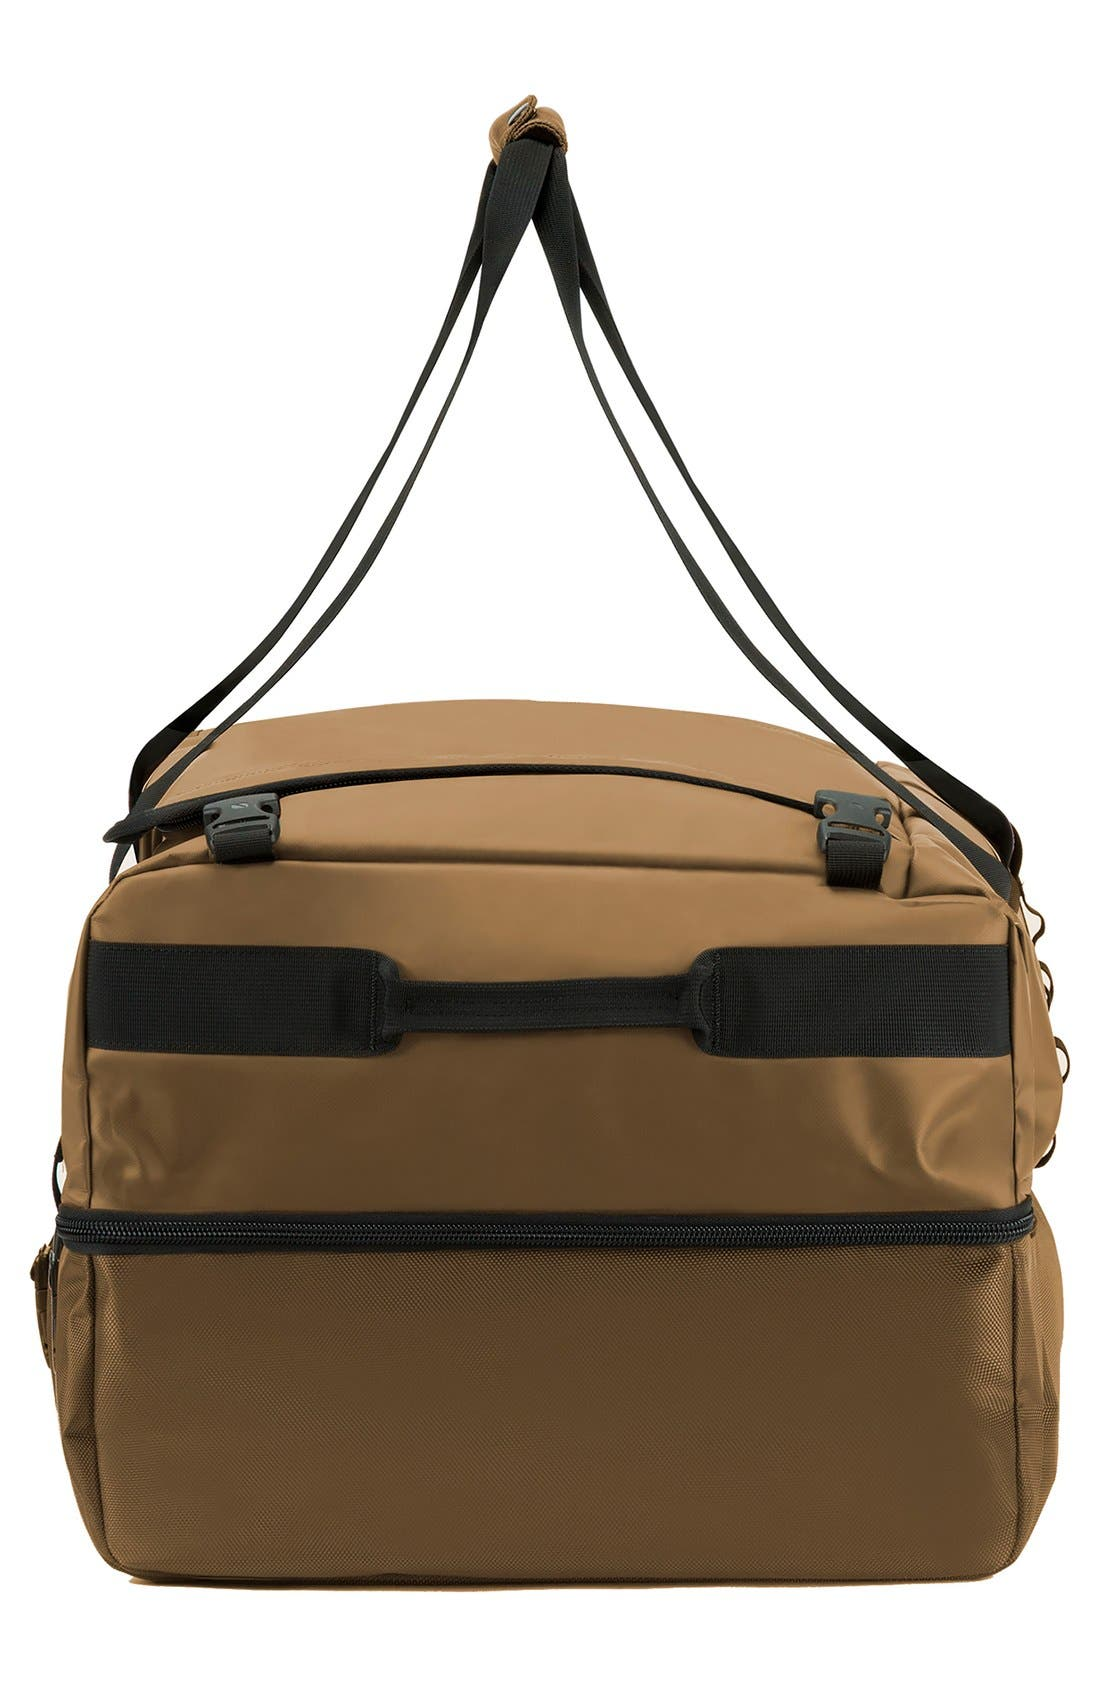 TRACTO Large Split Convertible Duffel Bag,                             Alternate thumbnail 6, color,